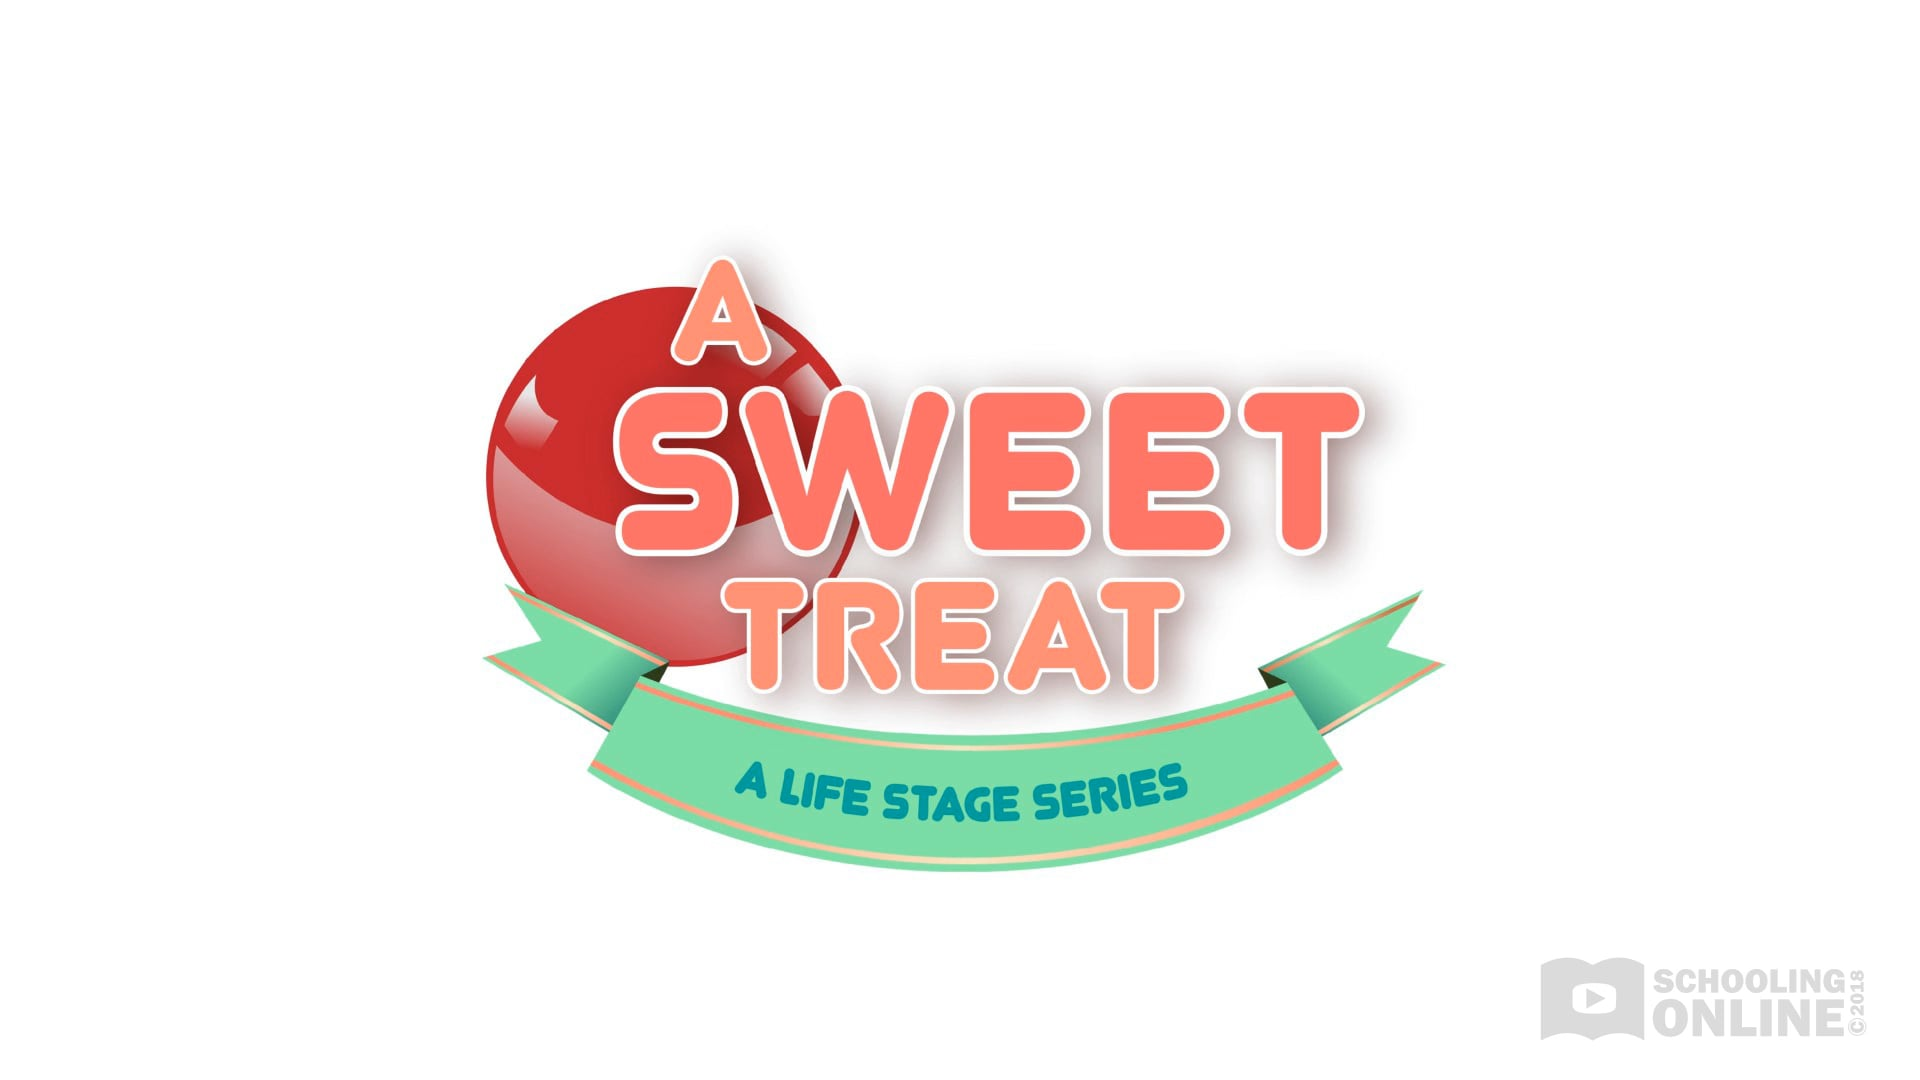 A Sweet Treat - The Life Stage Series